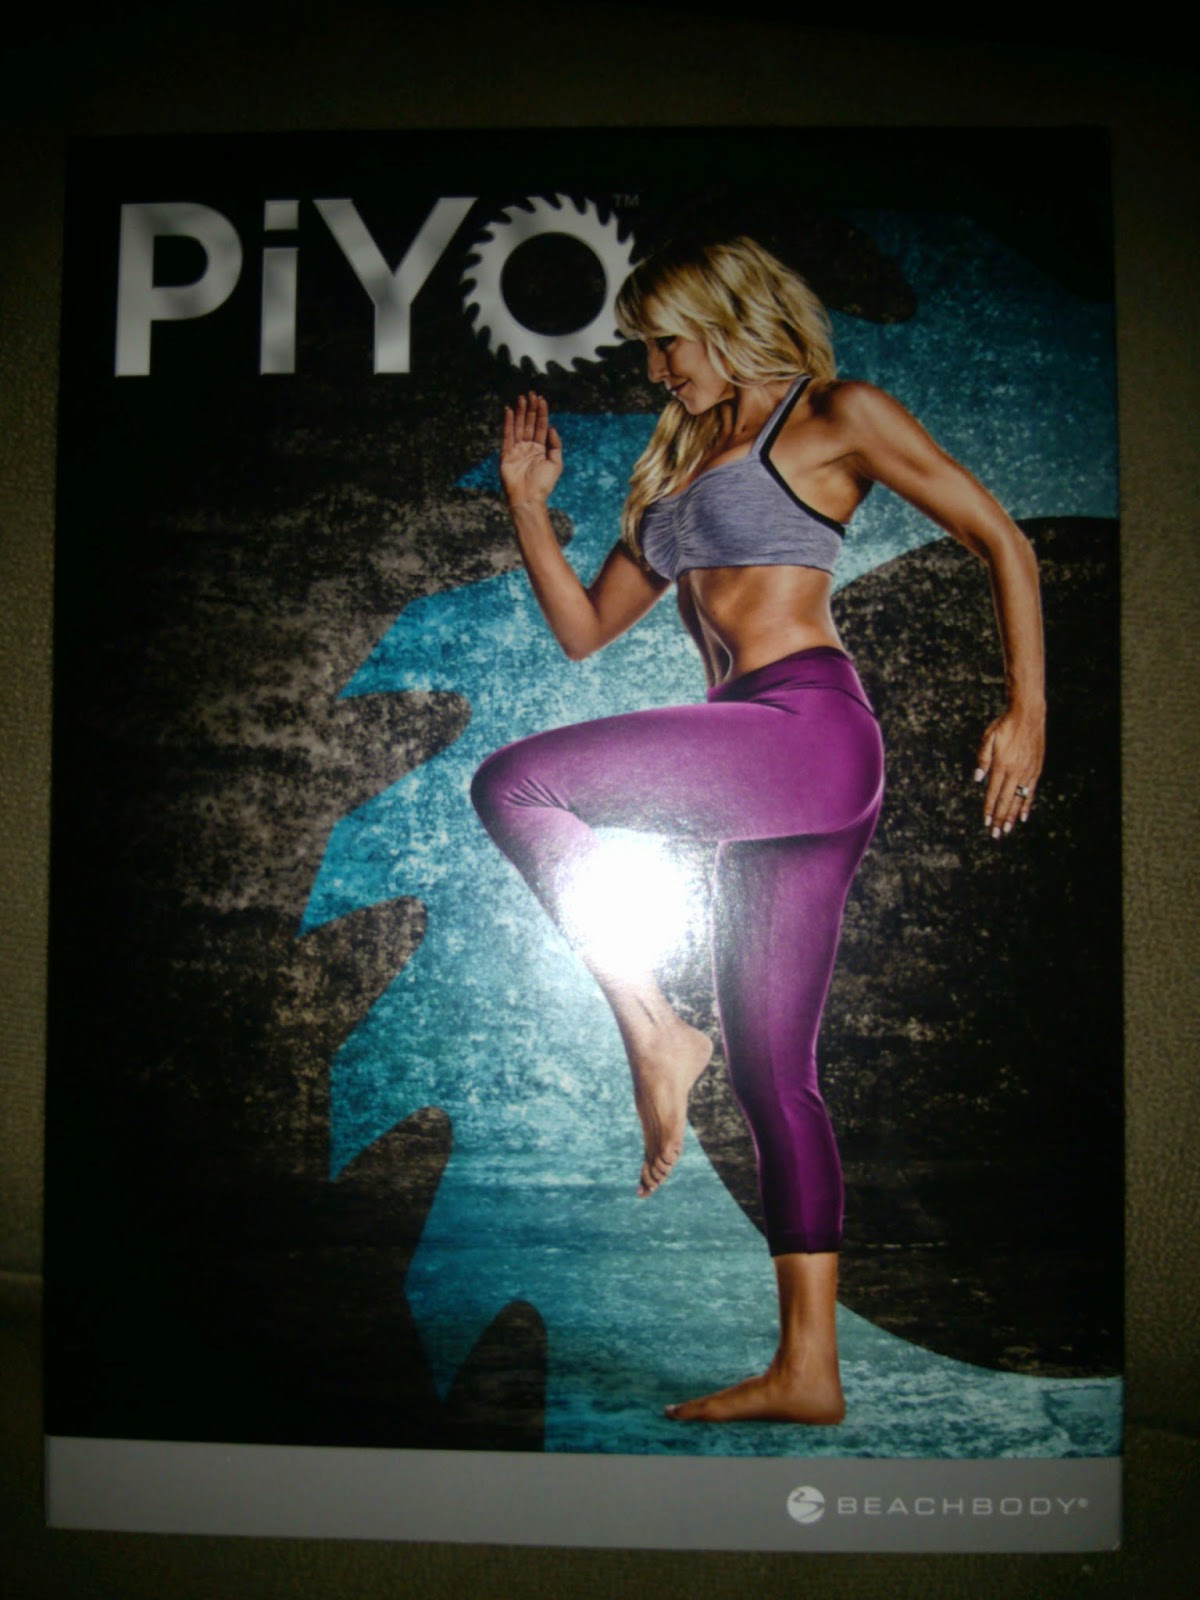 Trapped in a Fat Chick: Review of Beachbody PiYo Day 10